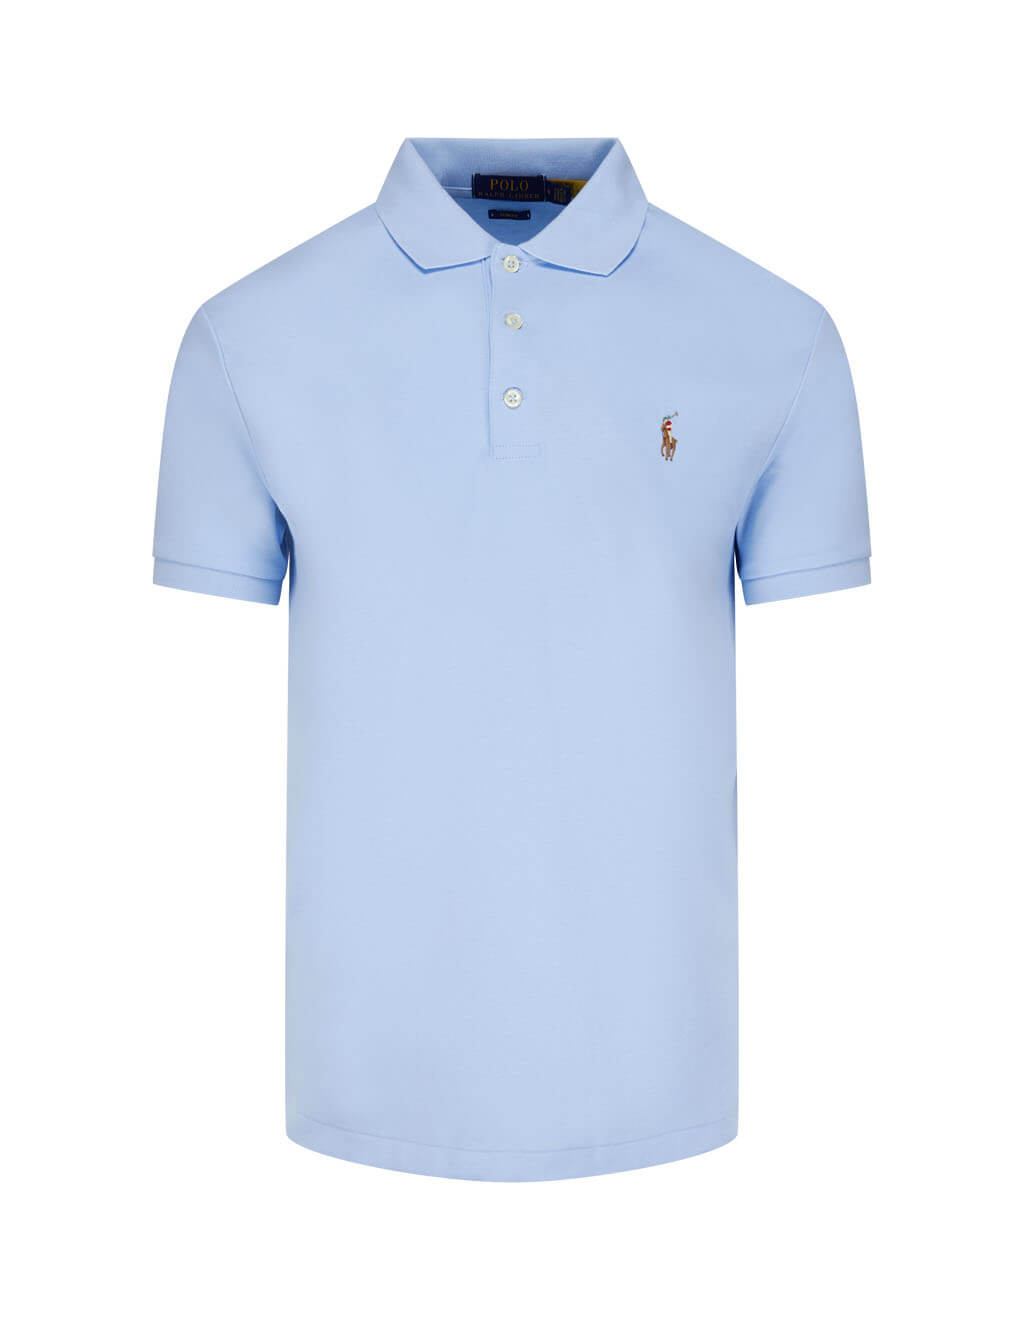 Men's Polo Ralph Lauren Slim Fit Soft Touch Polo Shirt in Light Blue 710685514004